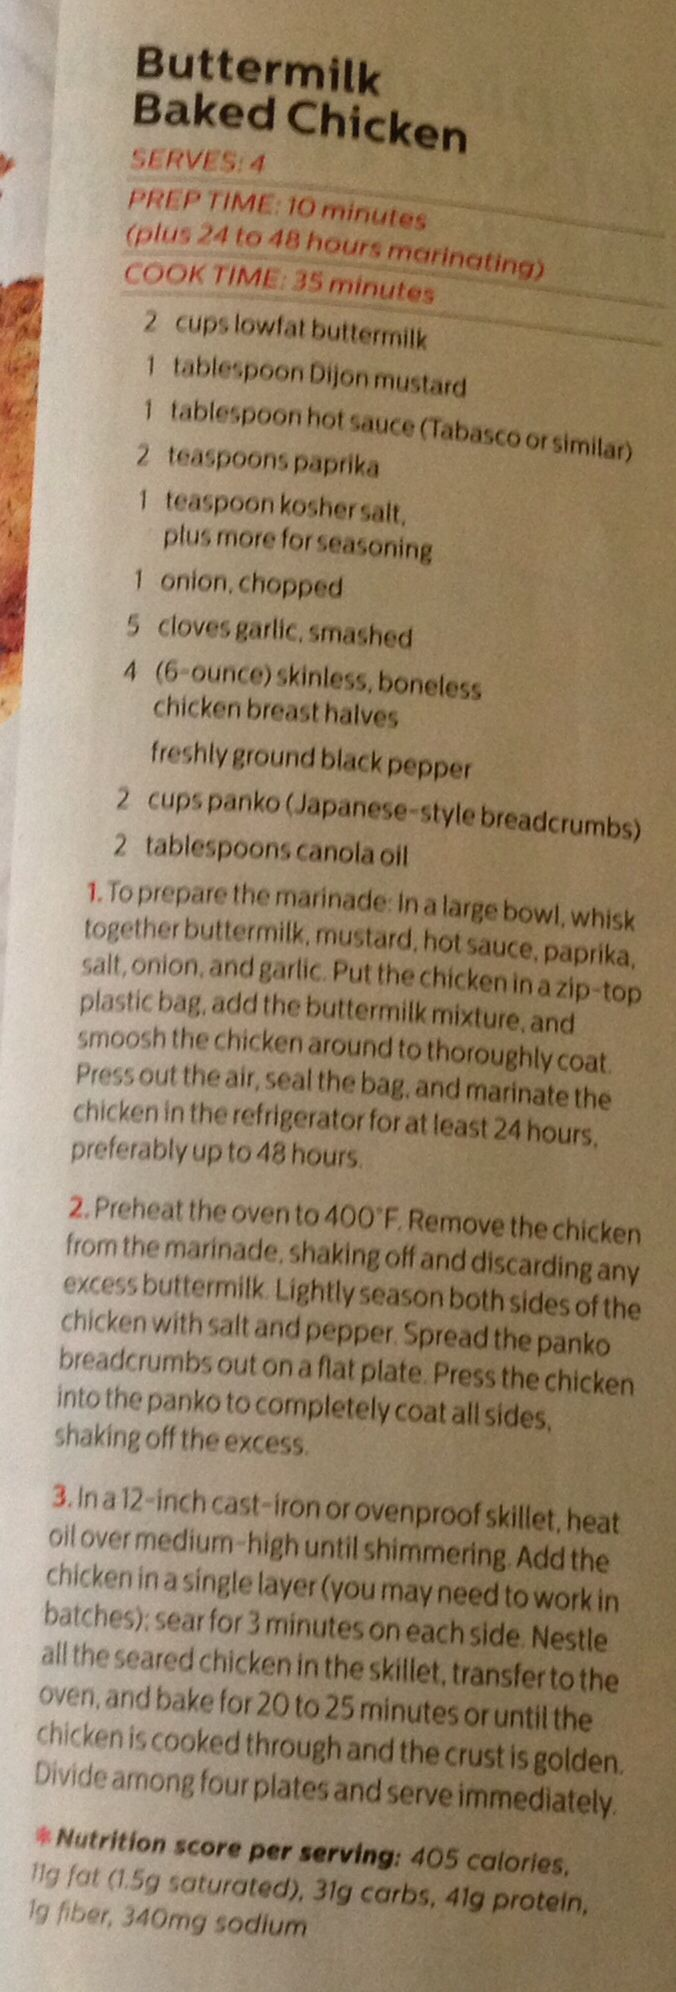 Buttermilk Baked Chicken recipe from Self 3/2014 mag